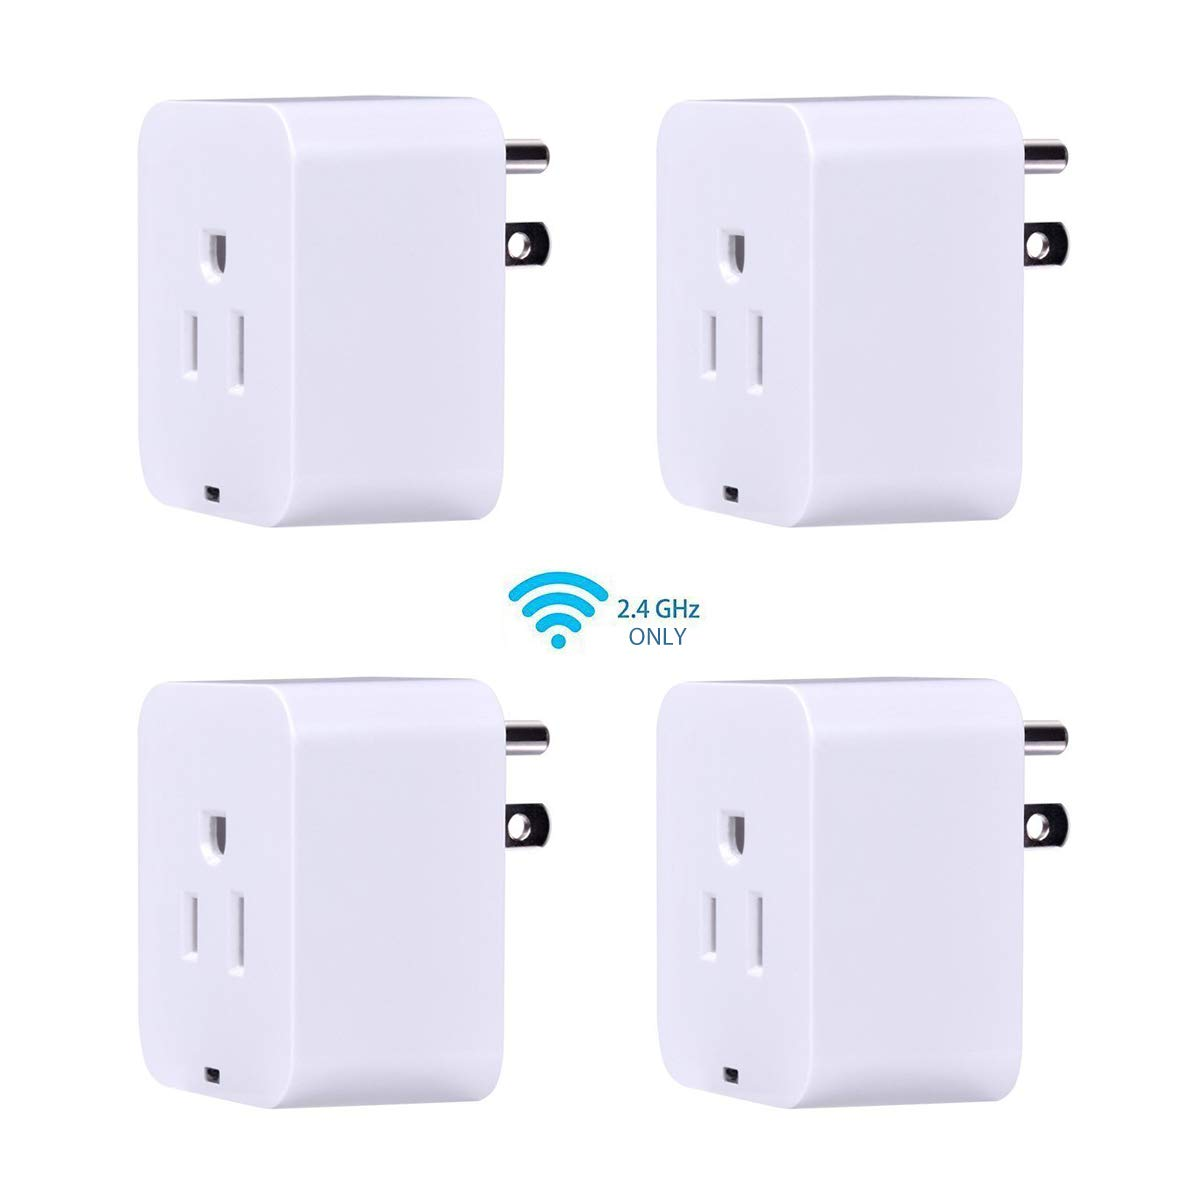 Smart Plug, POWRUI Mini WIFI Outlet Compatible With Amazon Alexa & Google Home,No Hub Required Timing Function Control Your Home,ETL certified, (4 pack)